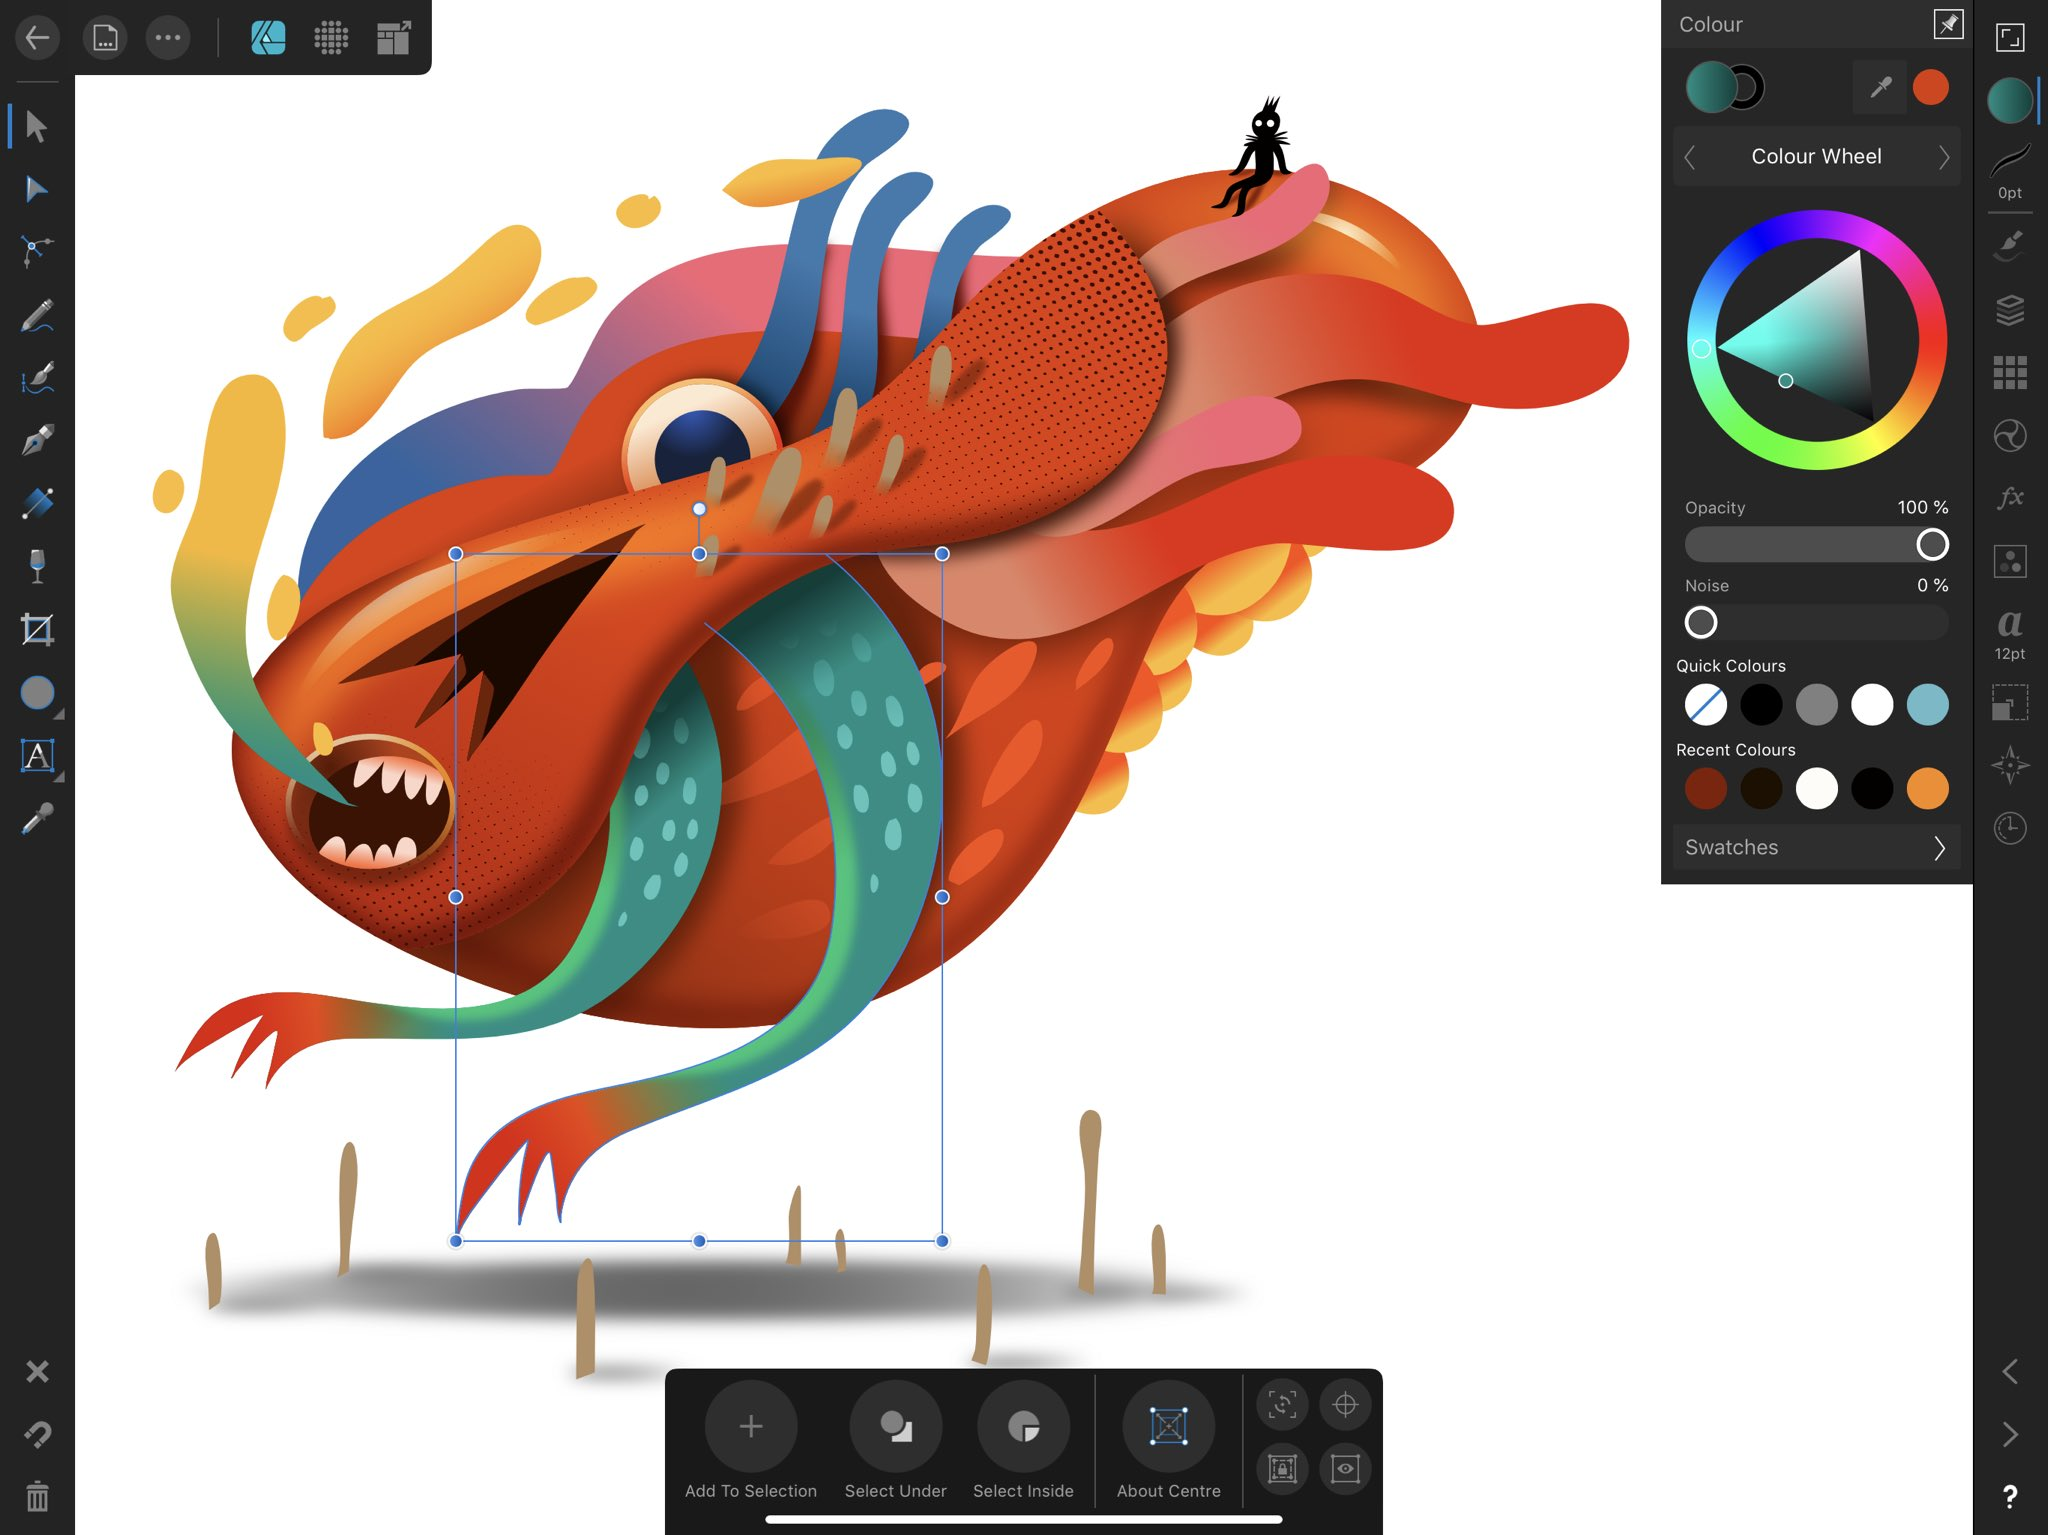 Today I had full of meeting, as an introvert person it makes me tired. Creating something on my iPad the best way to bring back my energy.  @affinitybyserif  #affinitydesigner #ipadpro #ipadart https://t.co/BZ296wavPc